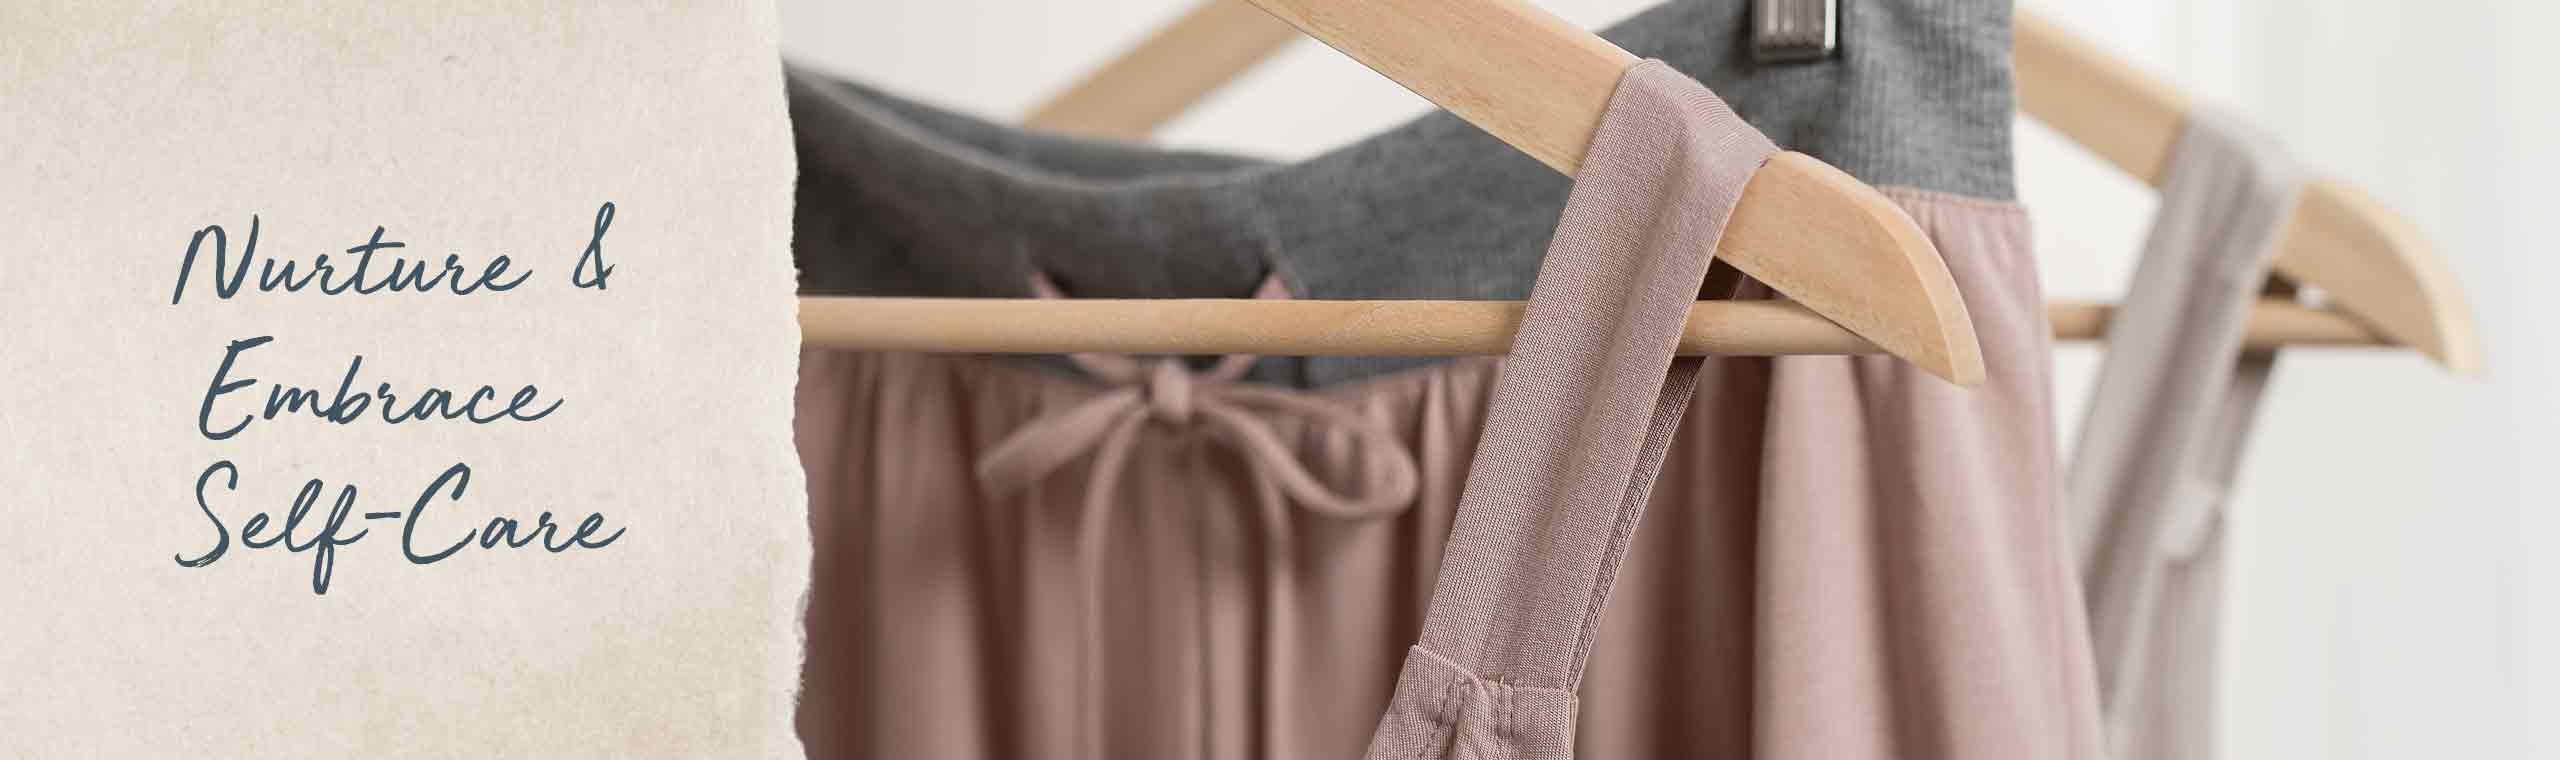 Embrace slef care. a photo of comfort apparel on hangers